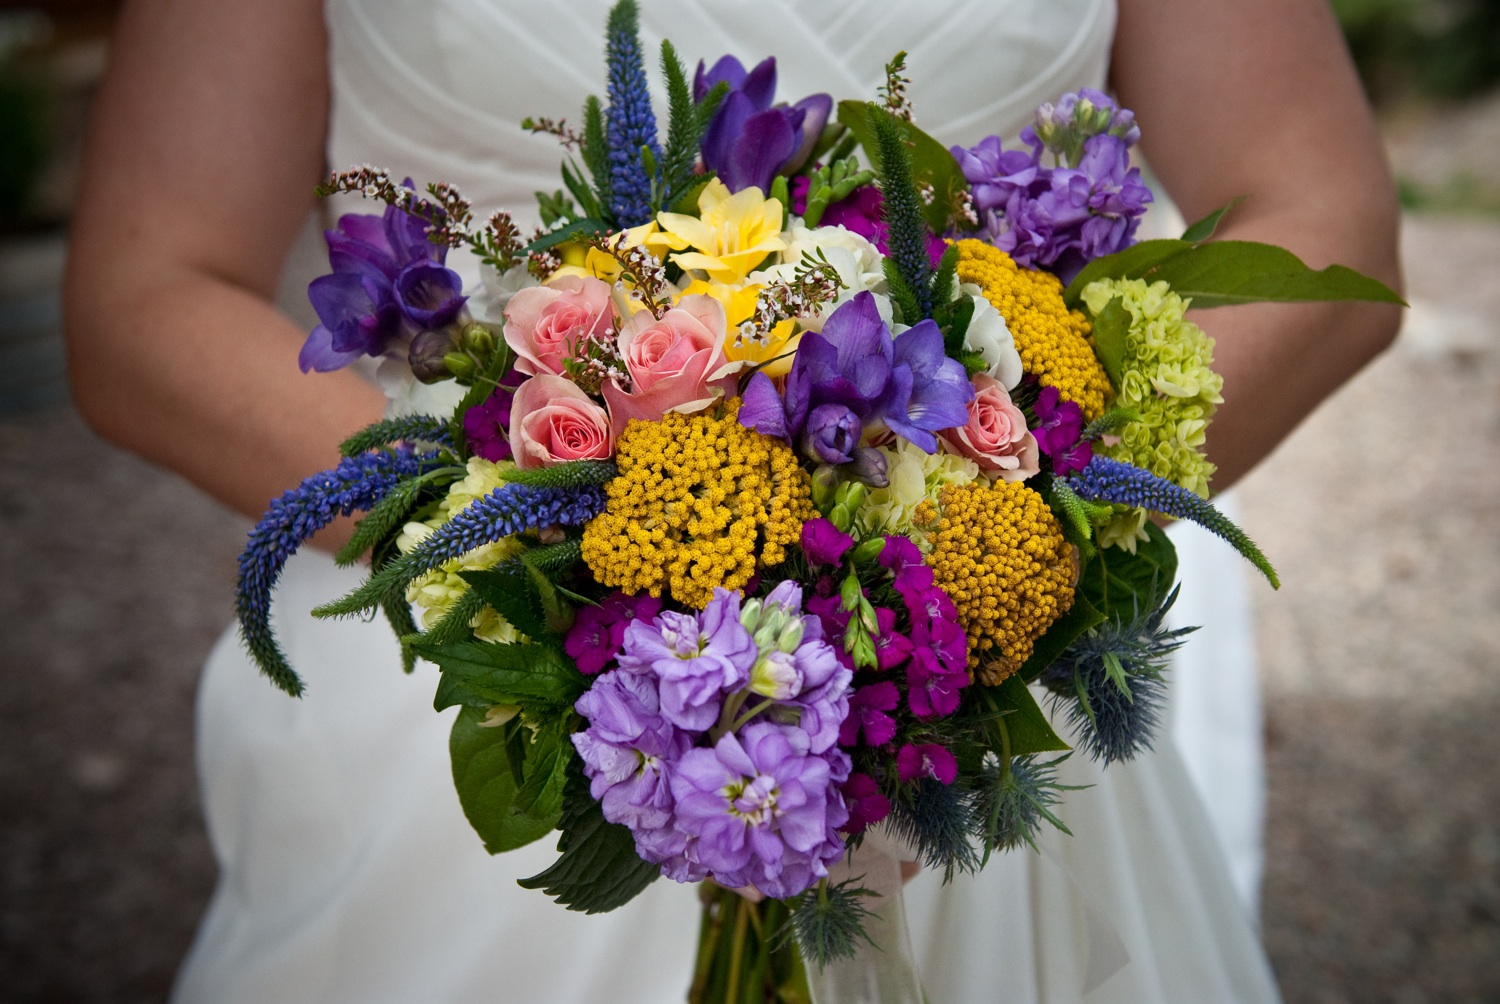 Colorful-bridal-bouquet-real-wedding.original